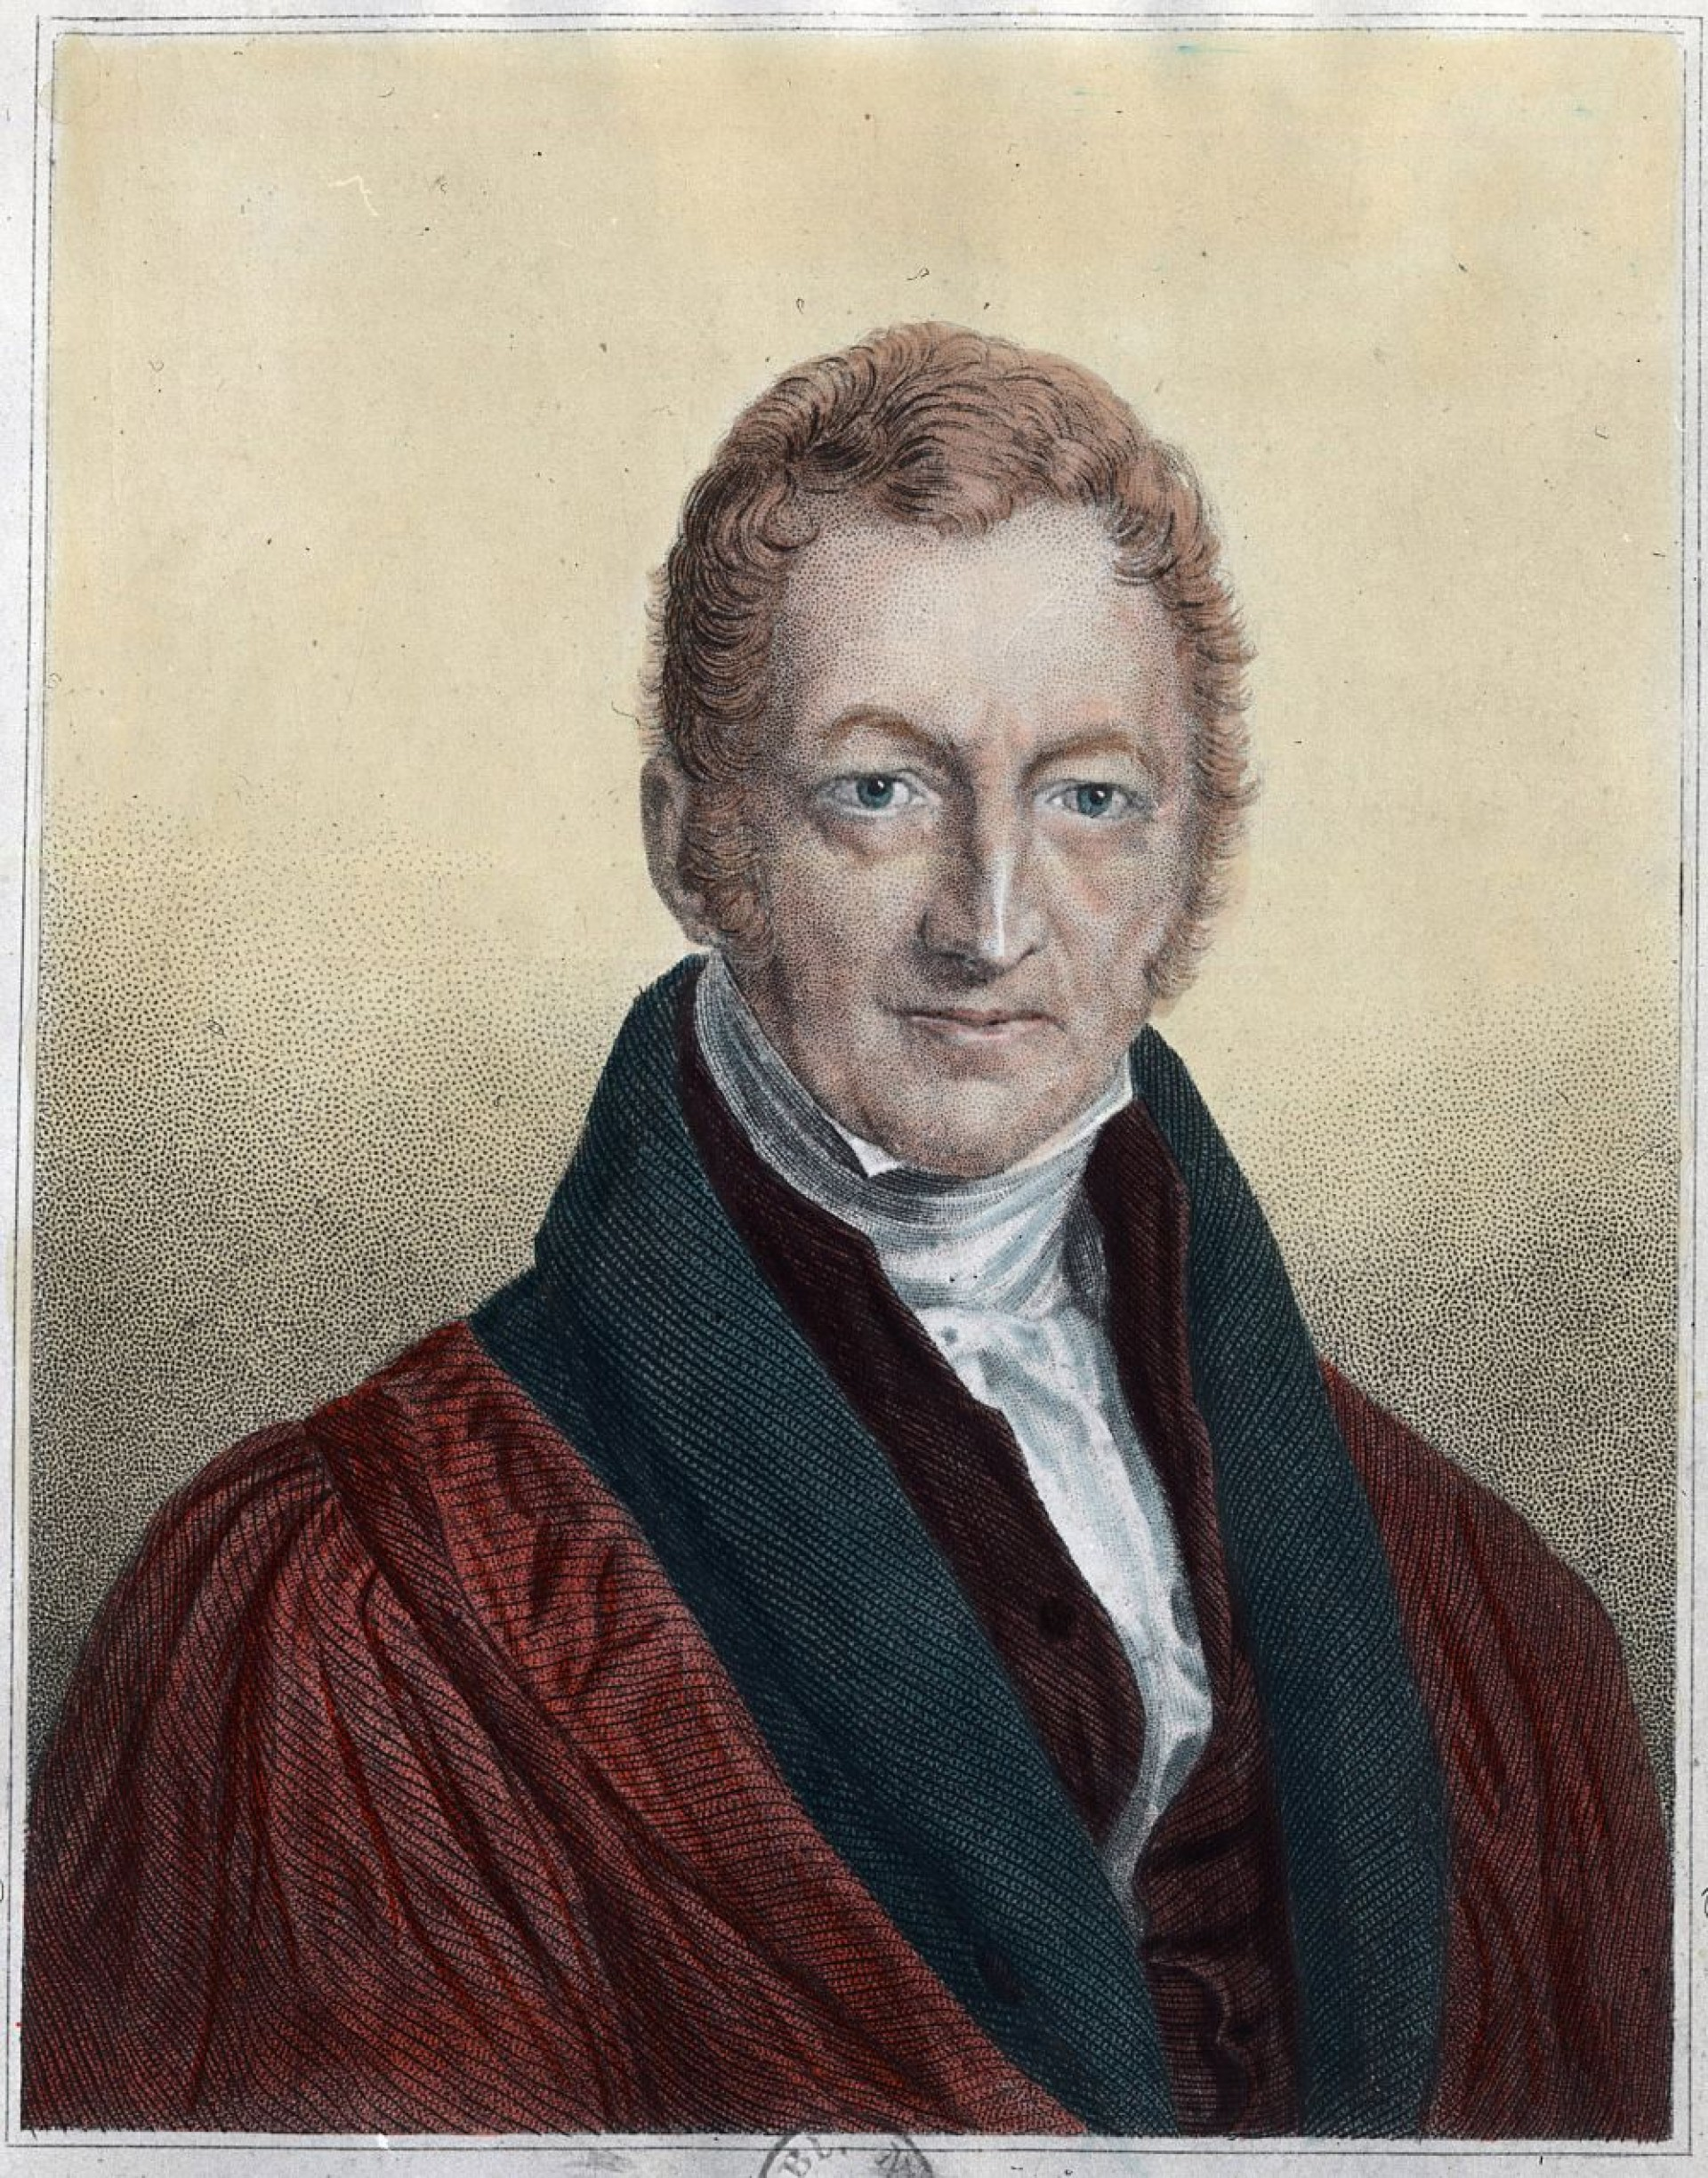 022 W1000 1798 1 Principe Population Thomas Malthus An Essay On The Principle Of Marvelous Summary Analysis Argued In His (1798) That 1920